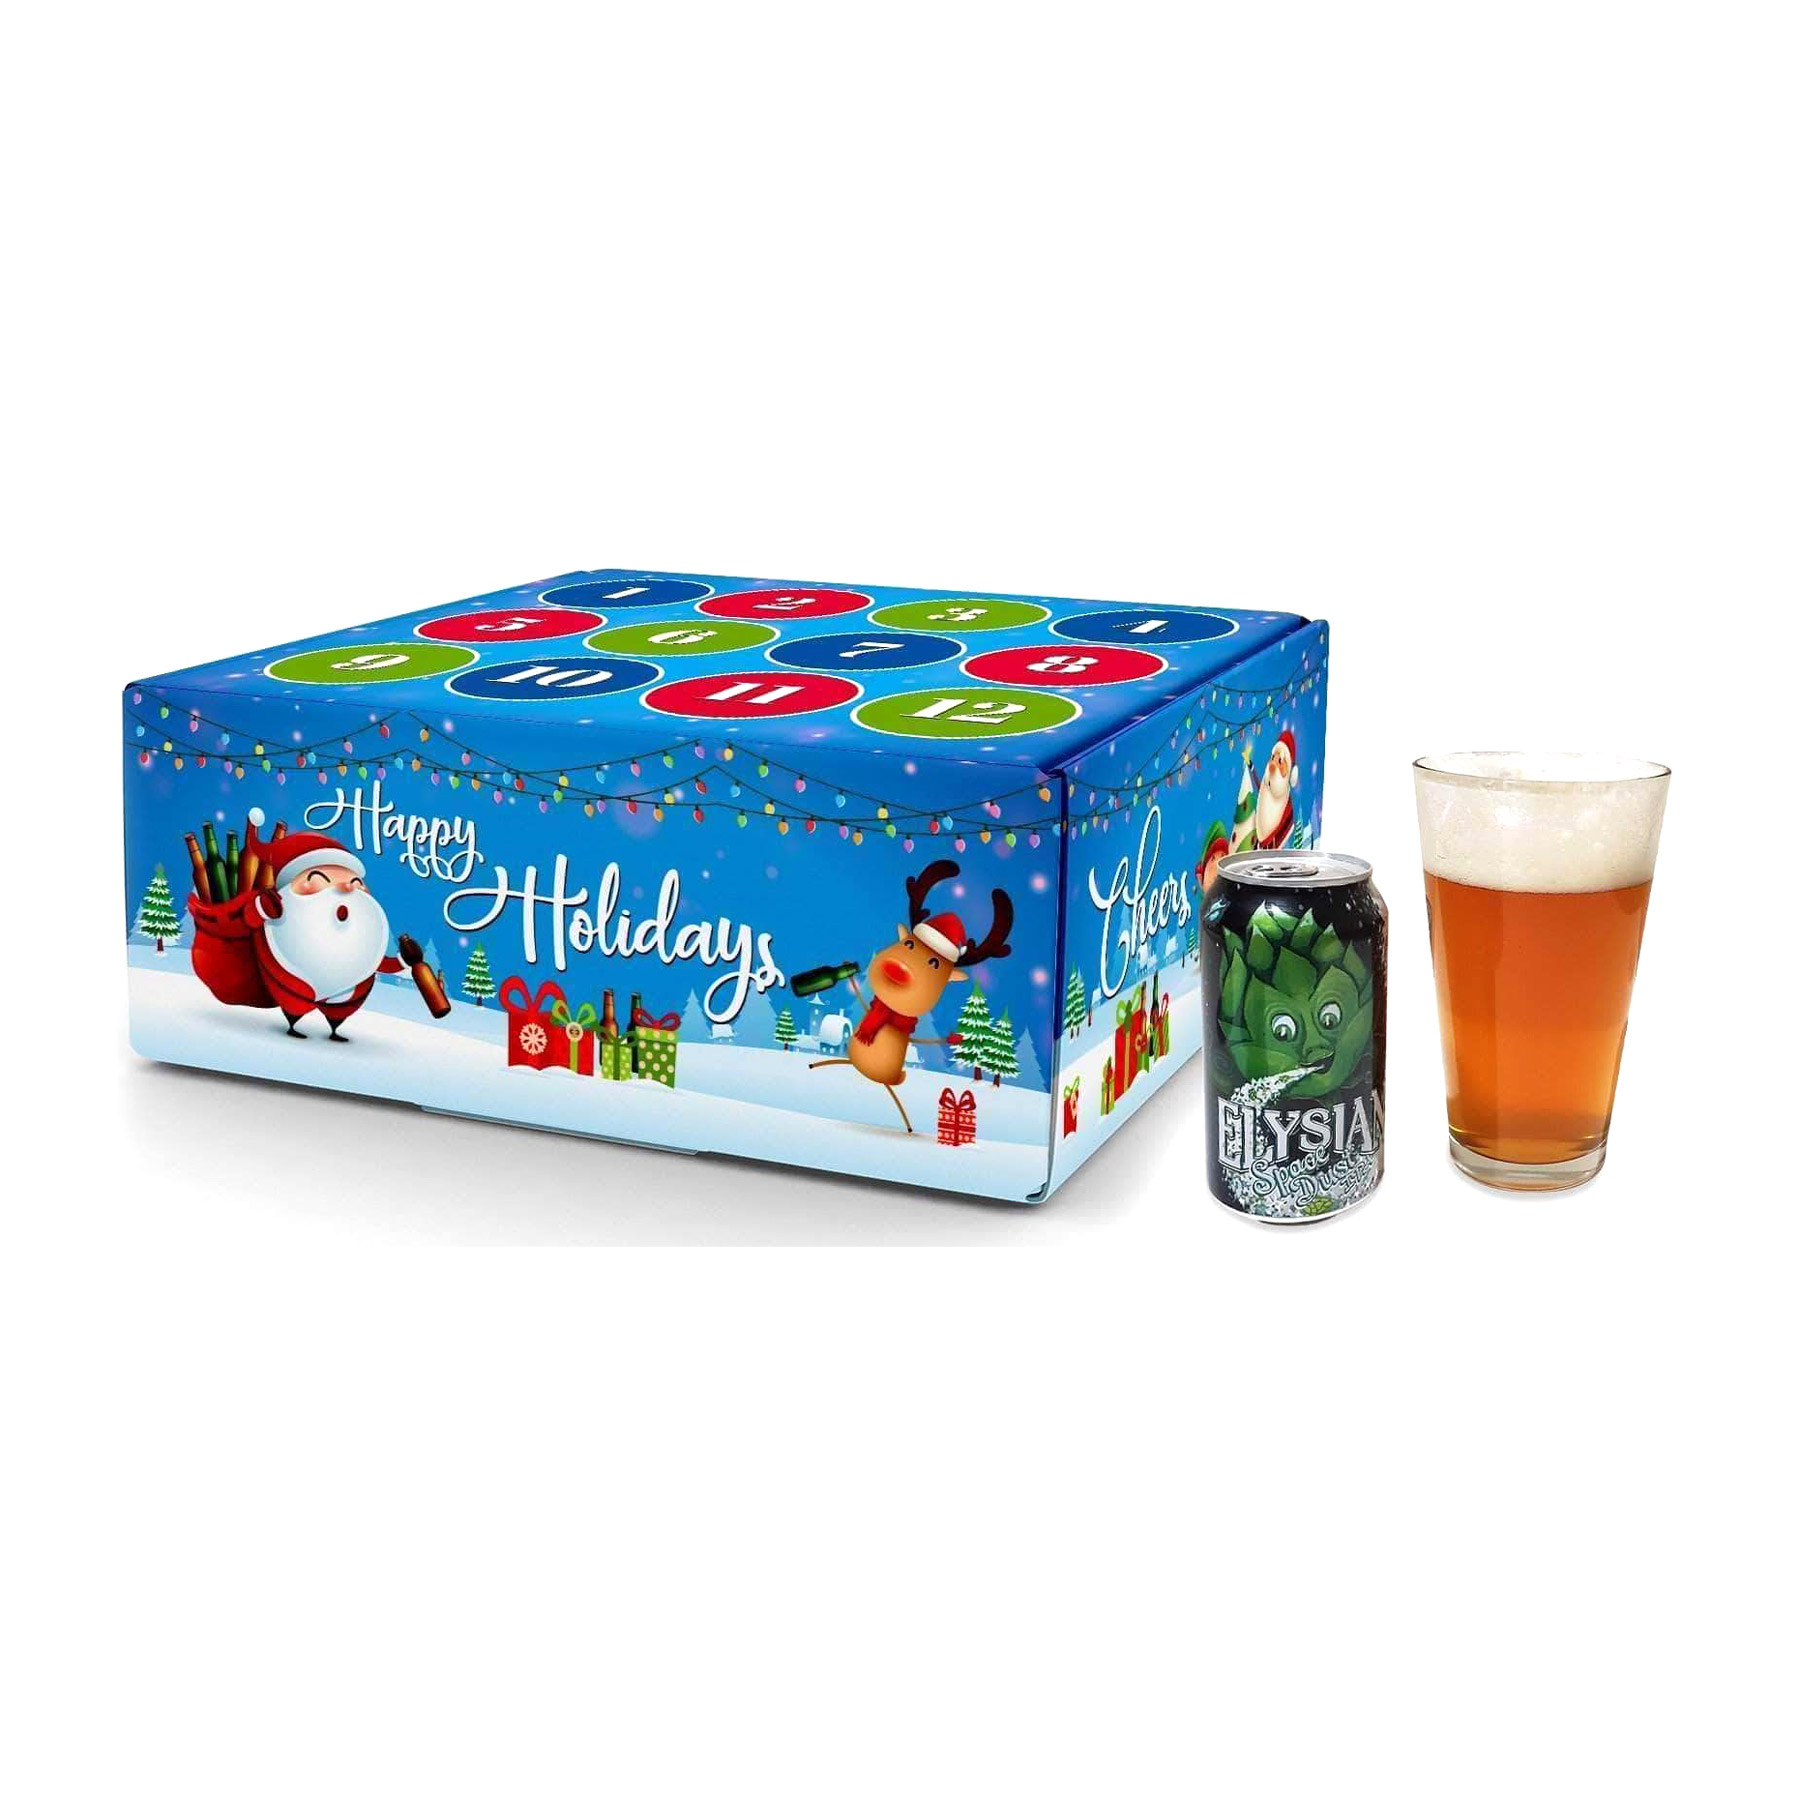 Give Them Beer Advent Calendar 2019